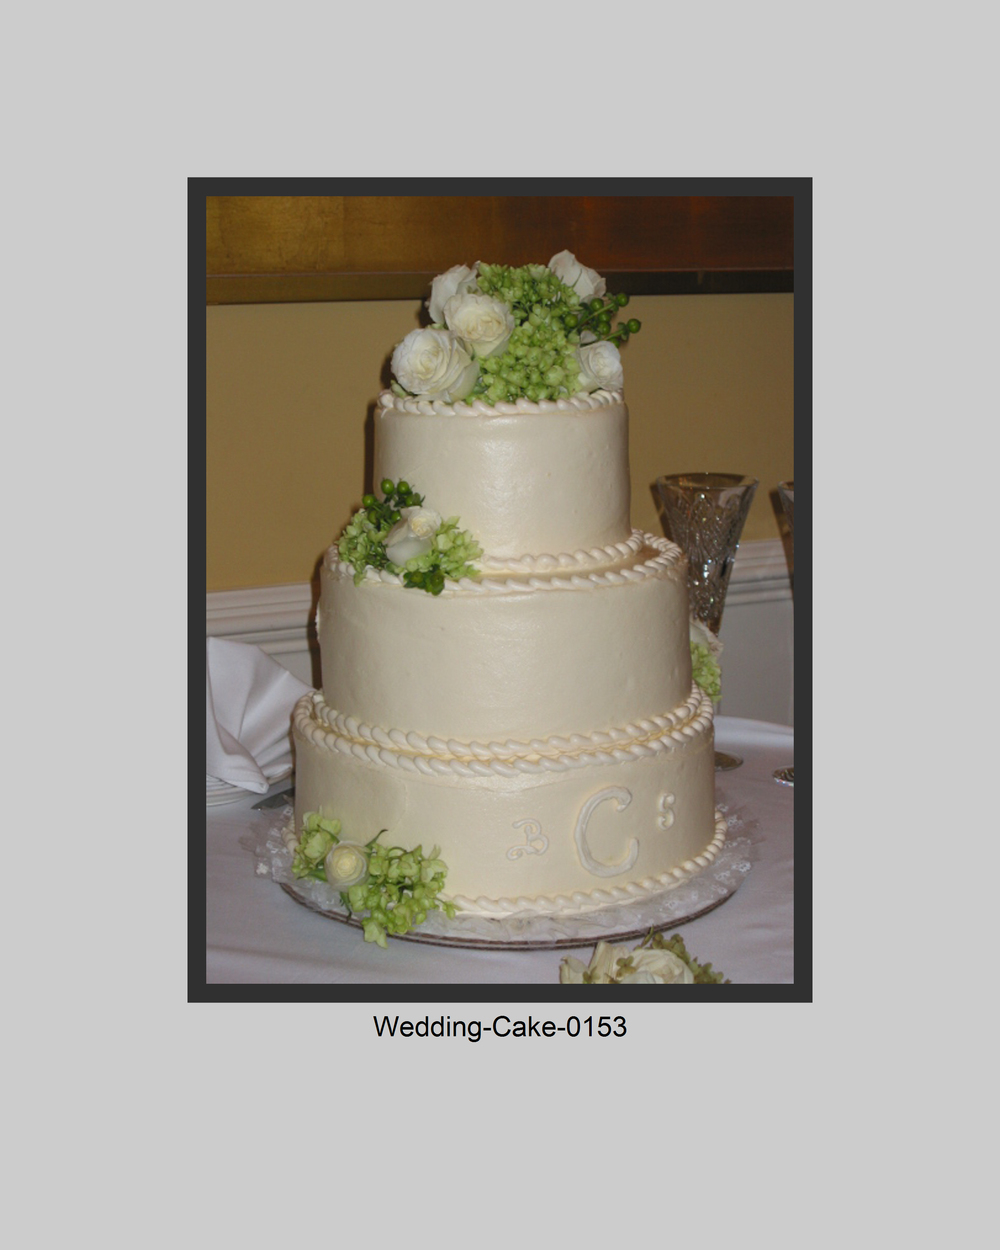 Wedding-Cake-Prints-0153.jpg